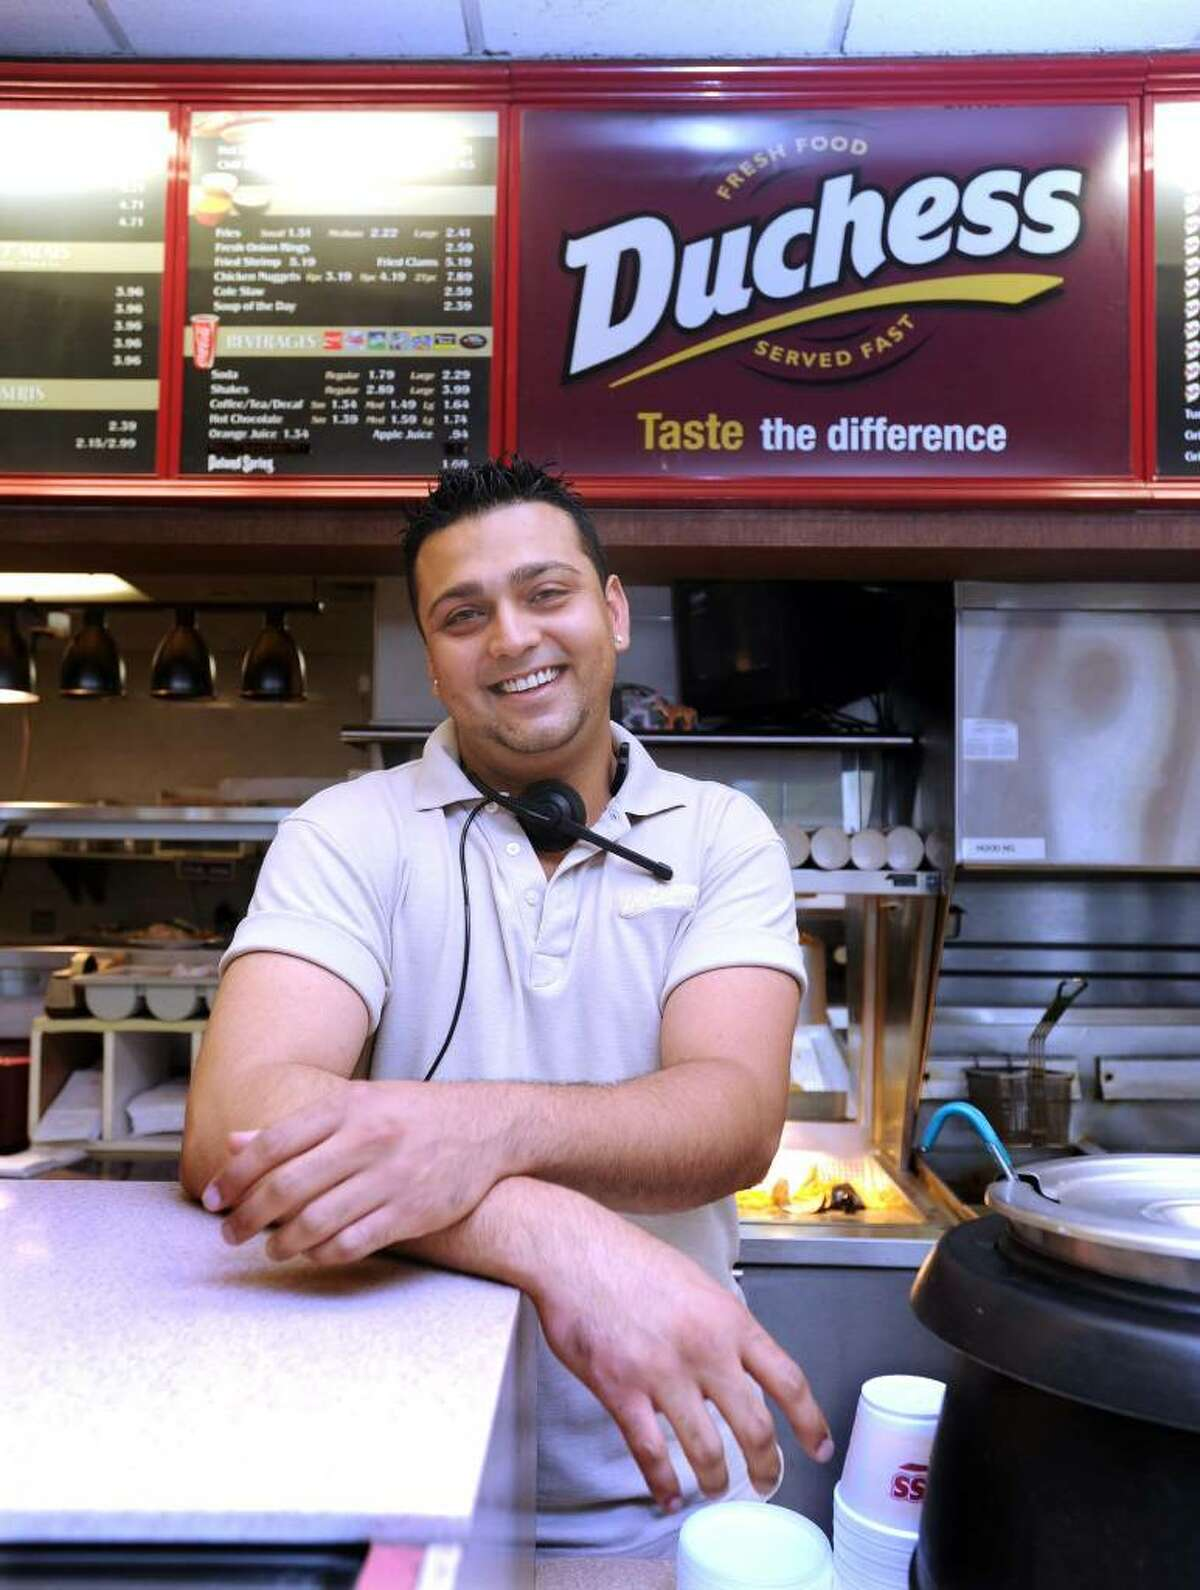 """Sunny Malhotra, 27, of Danbury. His parents, owners of two Dutchess Restaurants in Danbury, are from India and are naturalized American citizens. """" Sometimes you expect this to be the land of opportunity but it doesn't always turn out that way. I've done my bachelor's degree, Master's in business and I went overseas to earn a certification as a SAP consultant within the IT field but after all of it, I'm still back here helping my parents out at Dutchess. So sometimes it makes you wonder, what was it all for?"""""""